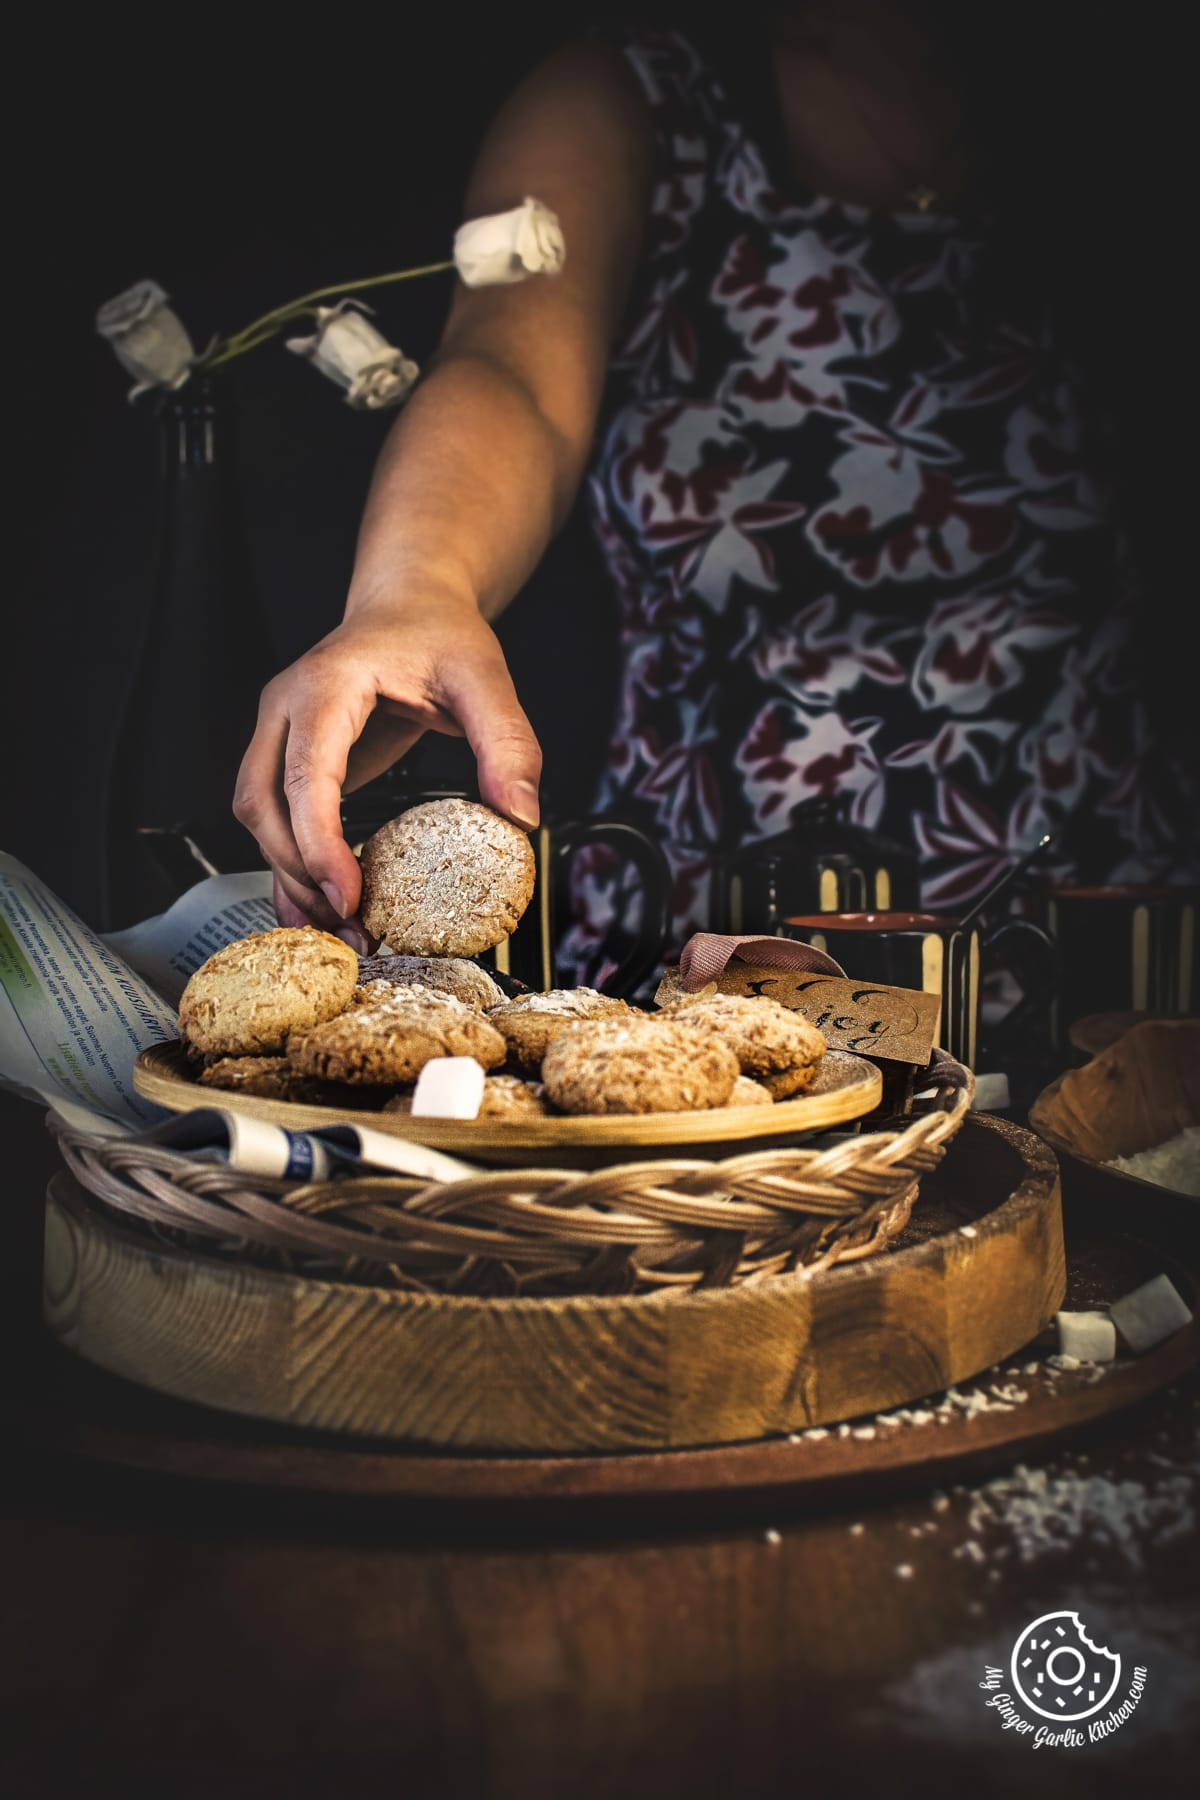 a hand is picking coconut cookie from the plate